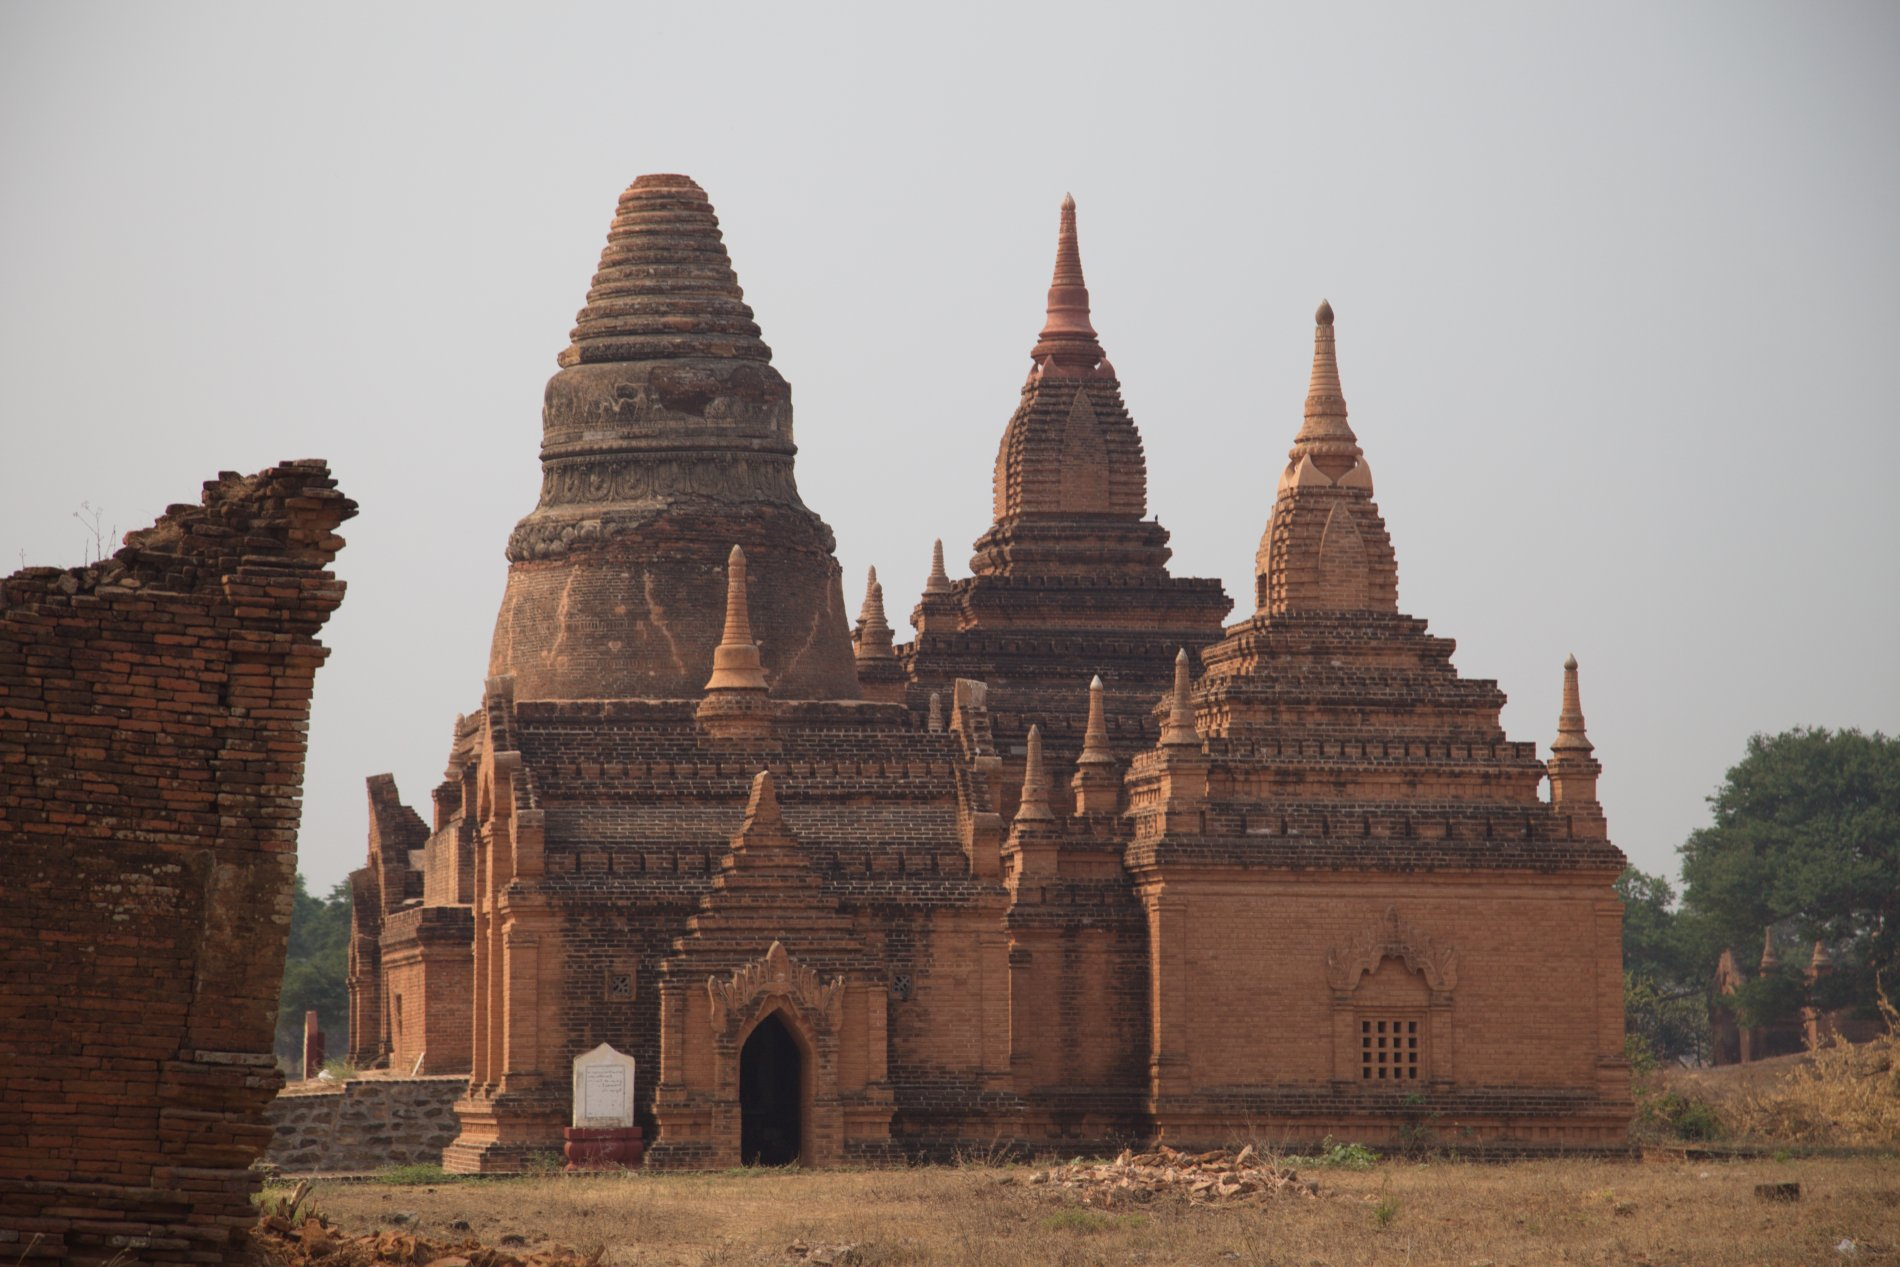 Bagan_114.jpg-commment